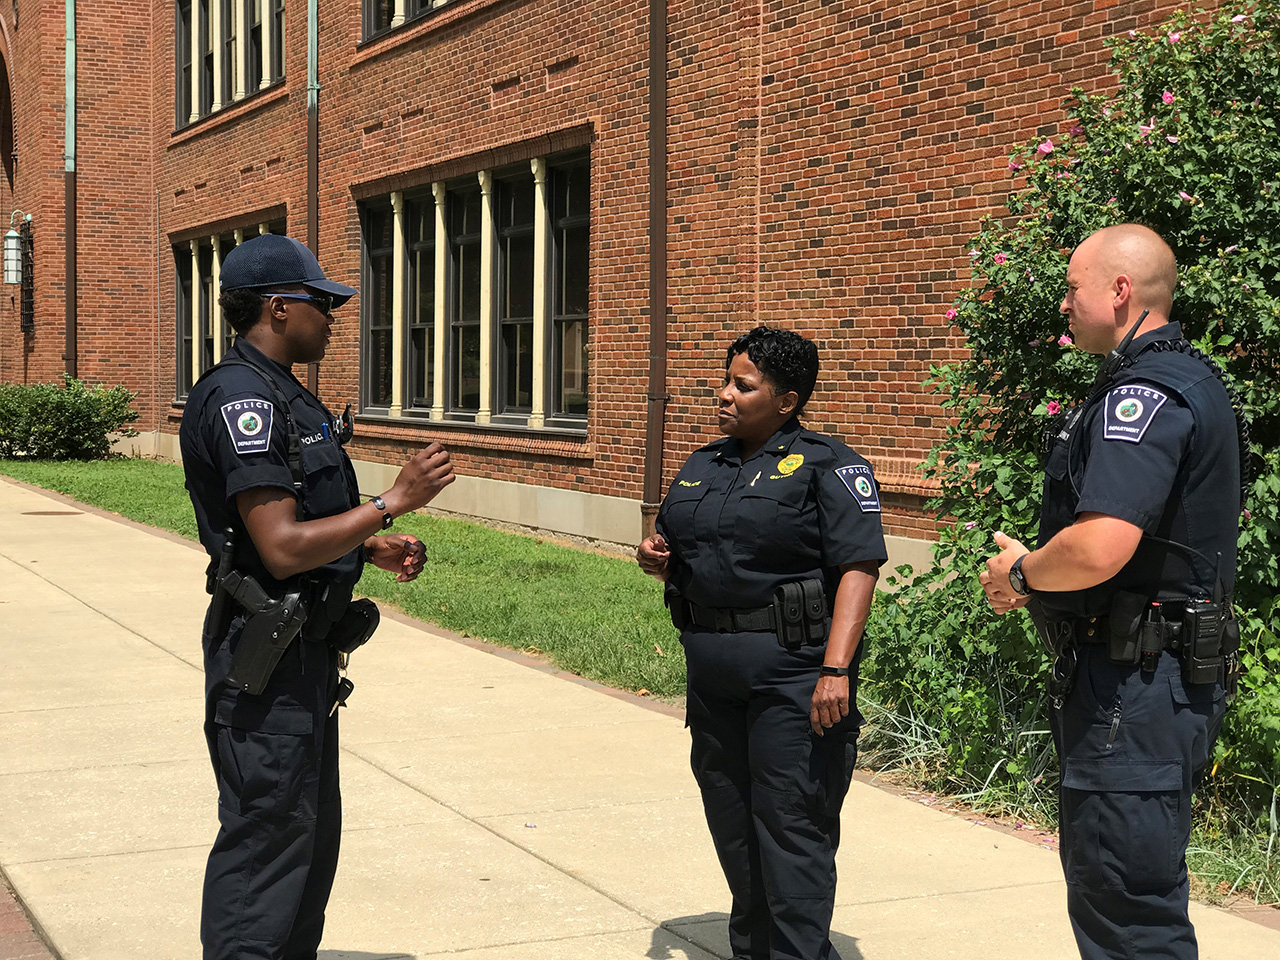 Indianapolis Public Schools Police Department Chief Tonia Guynn talks to two other officers working for the district in front of a school building.